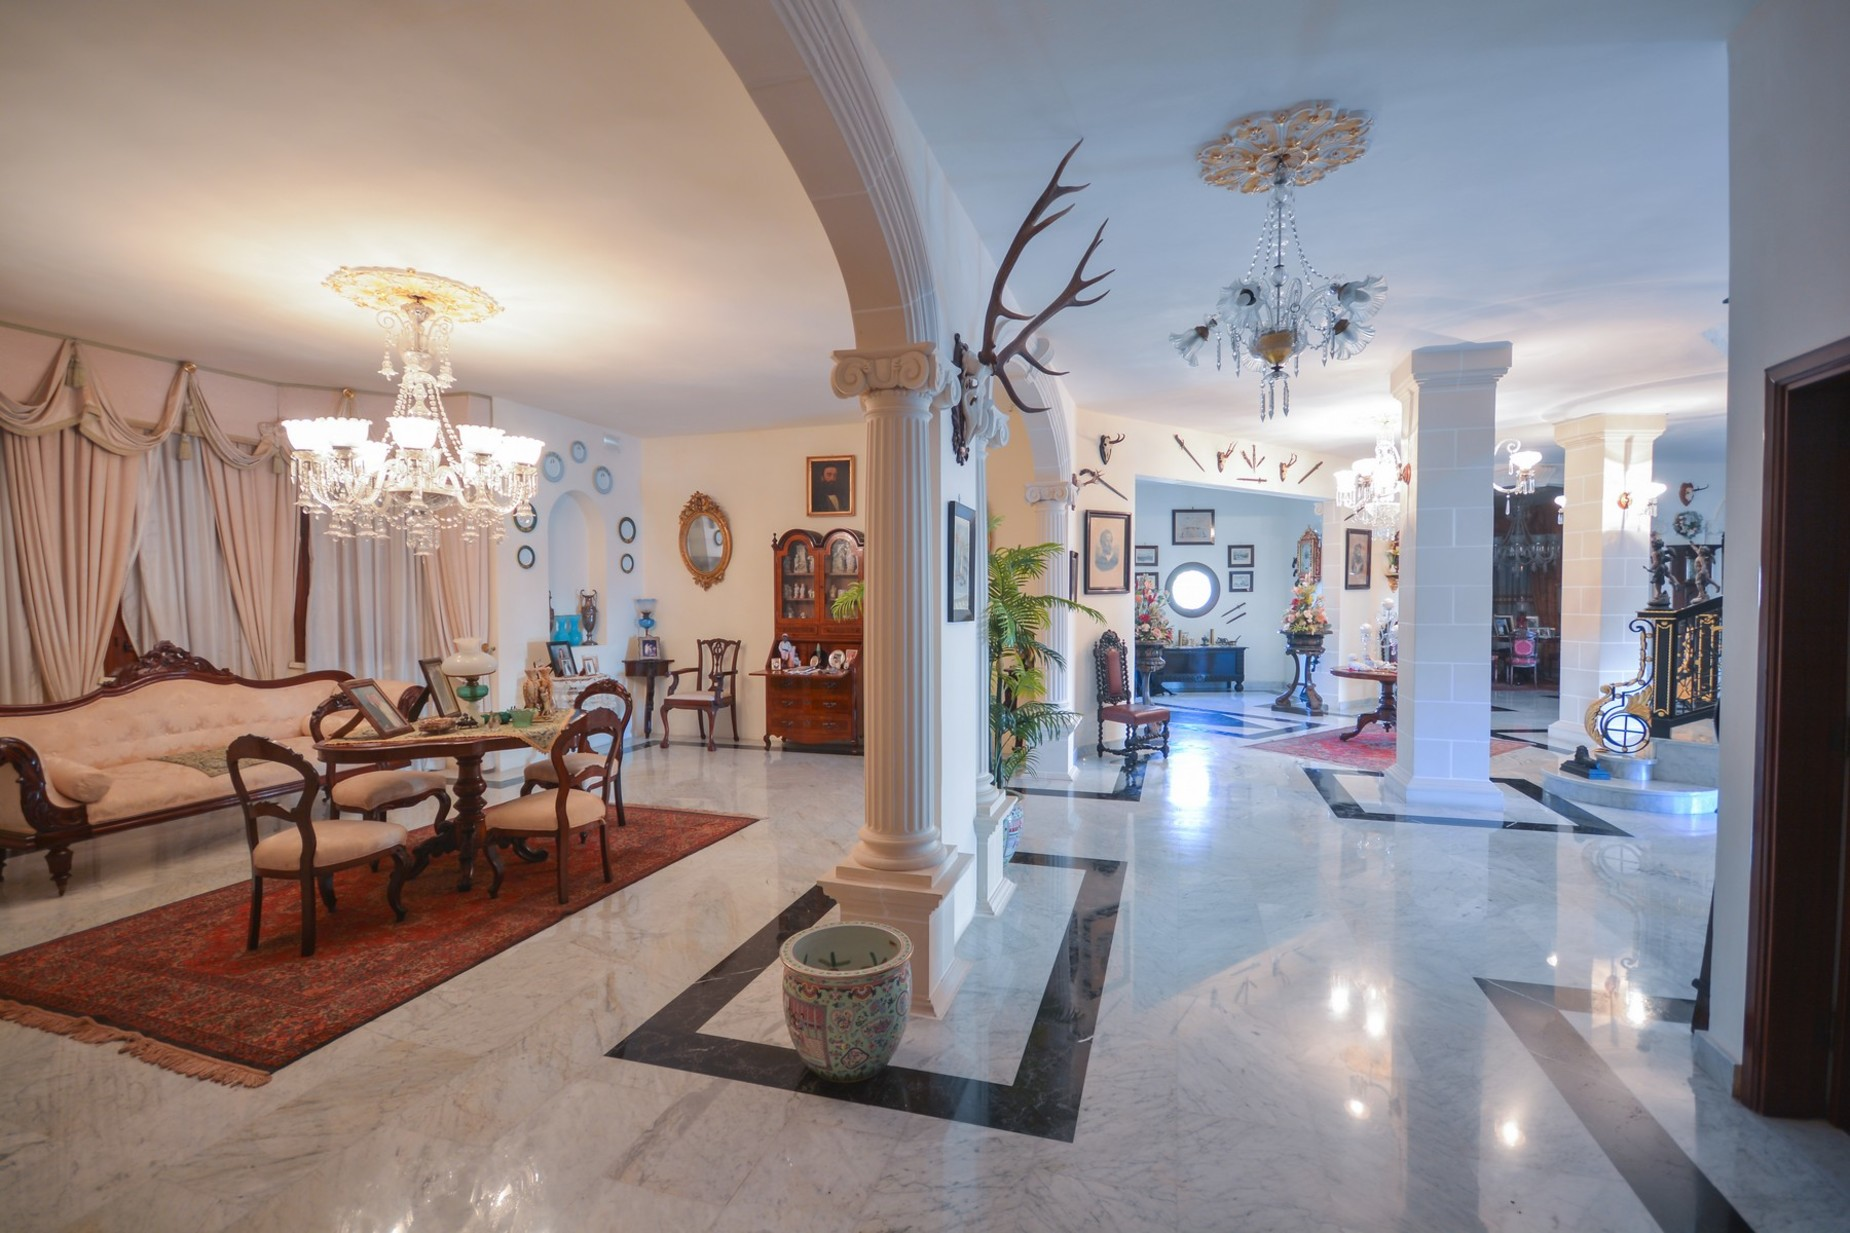 10 bed Villa For Sale in Madliena, Madliena - thumb 5